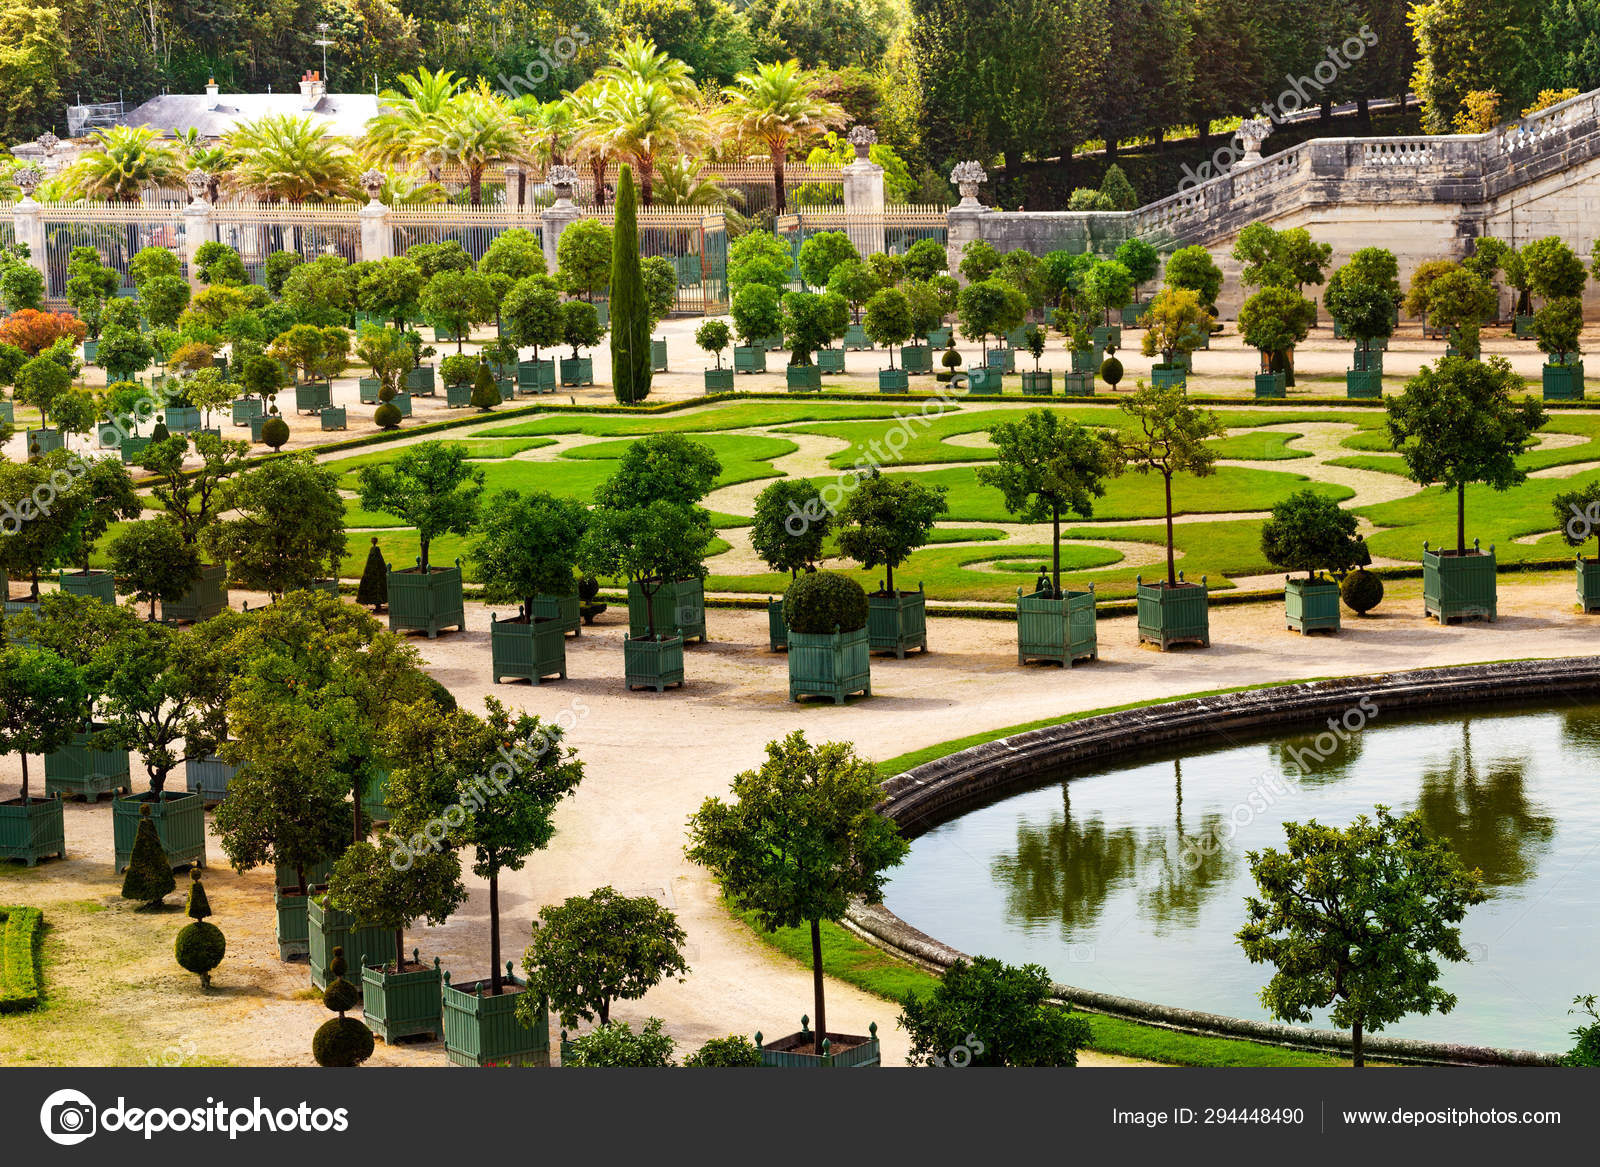 depositphotos stock photo beautiful view palace versailles garden